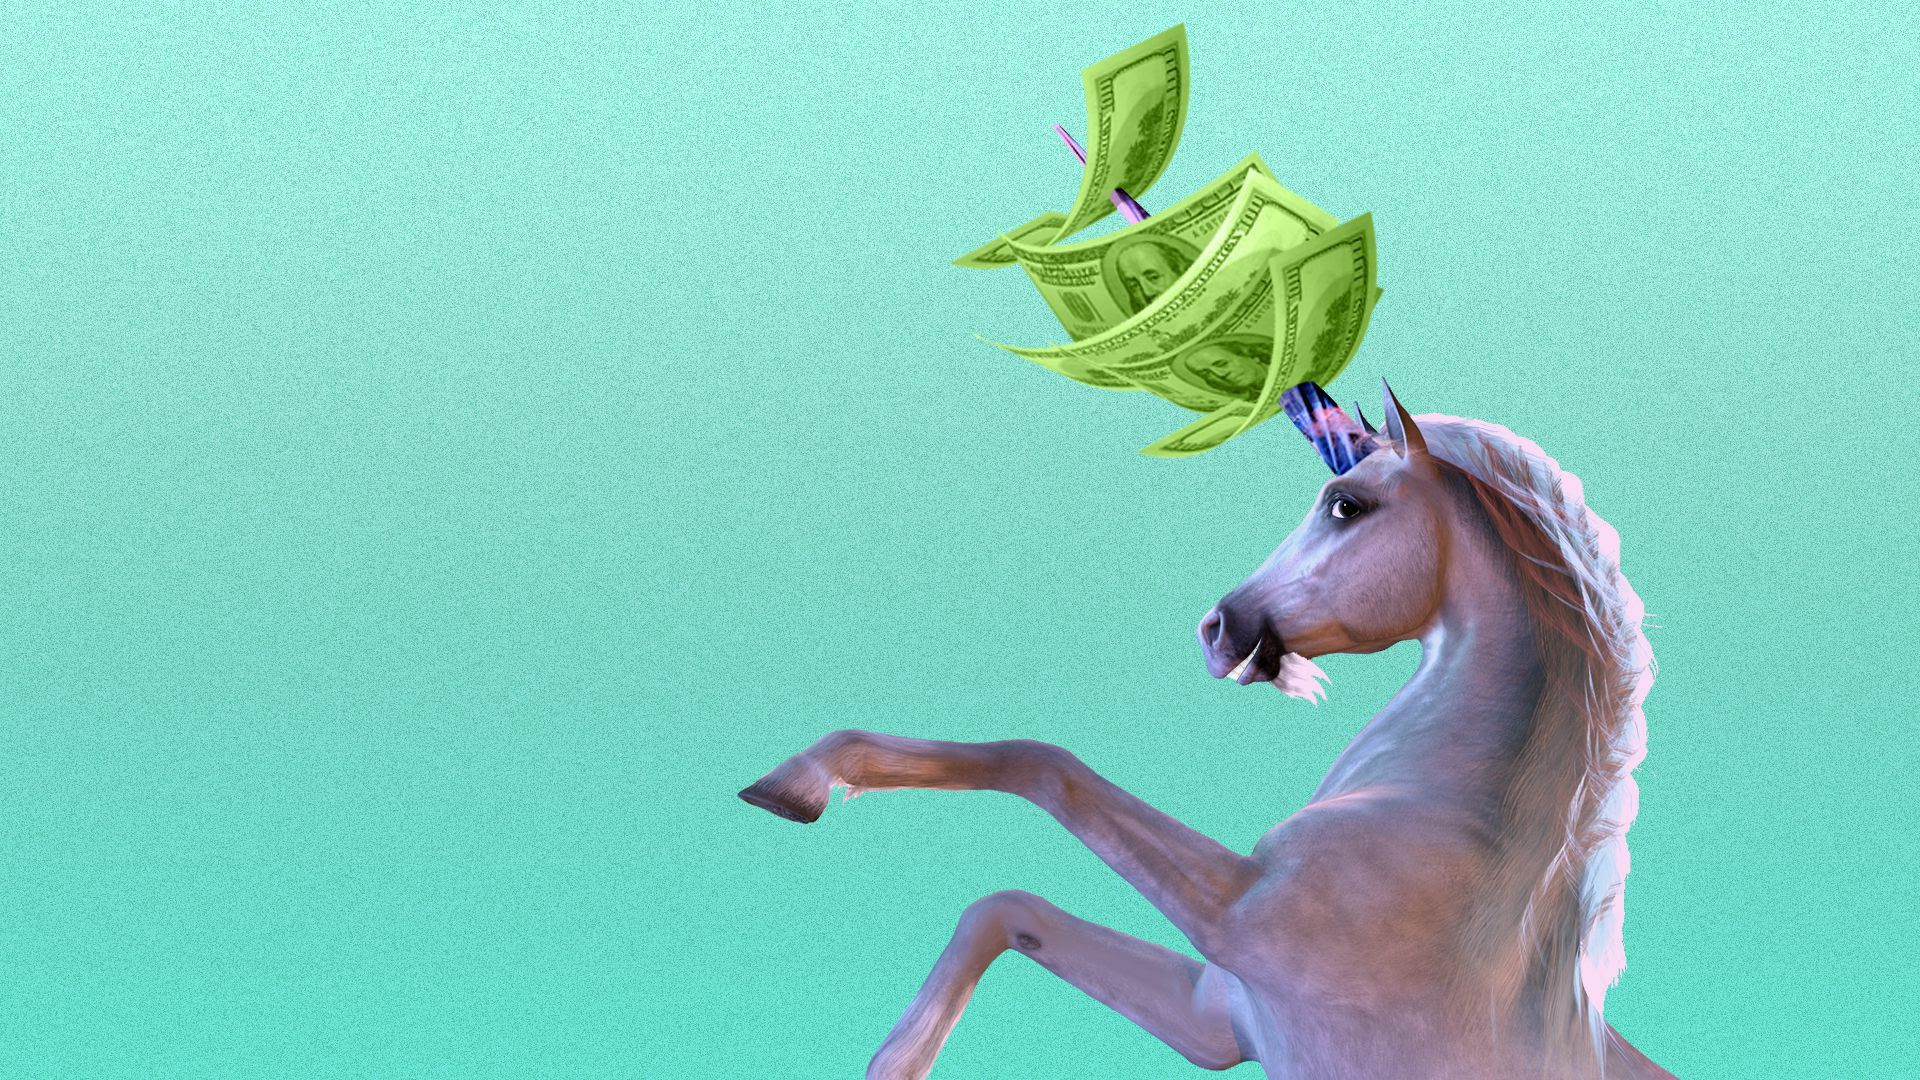 Unicorn with horn going through money